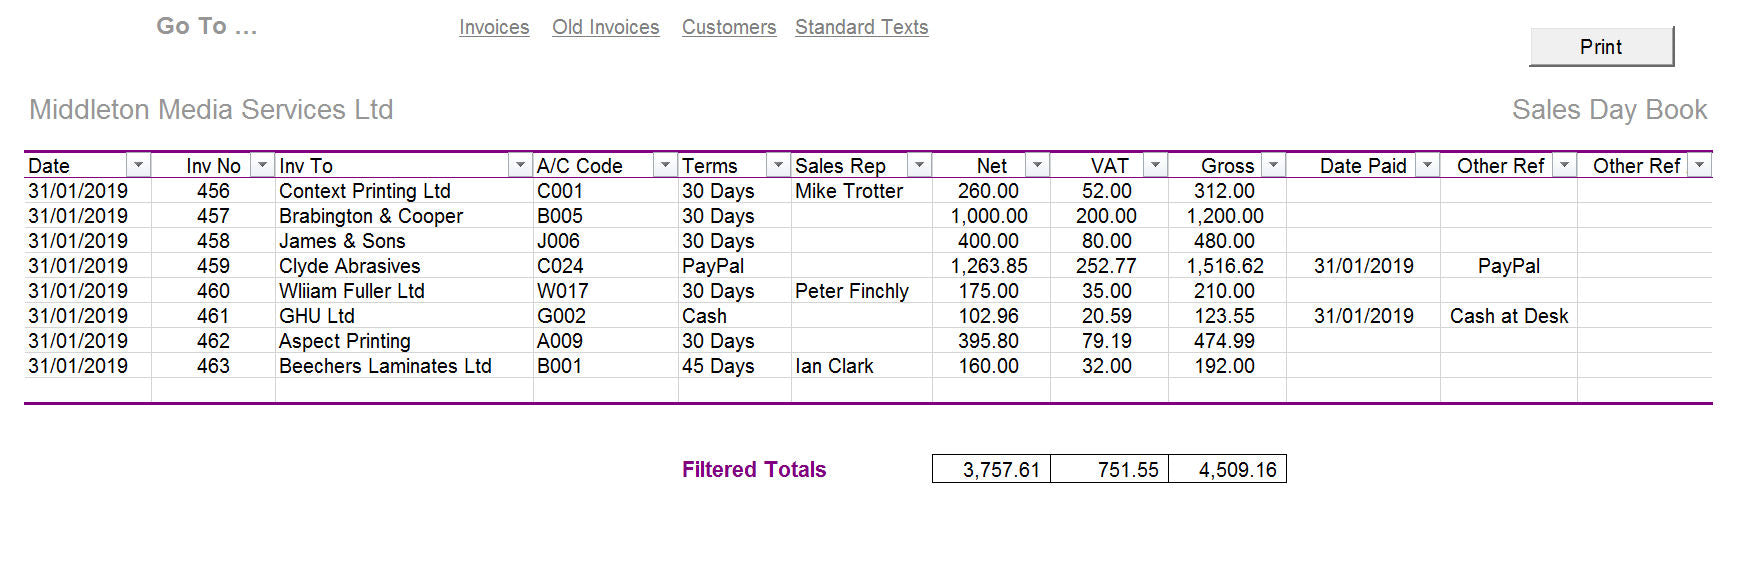 Sales Day Book Spreadsheet